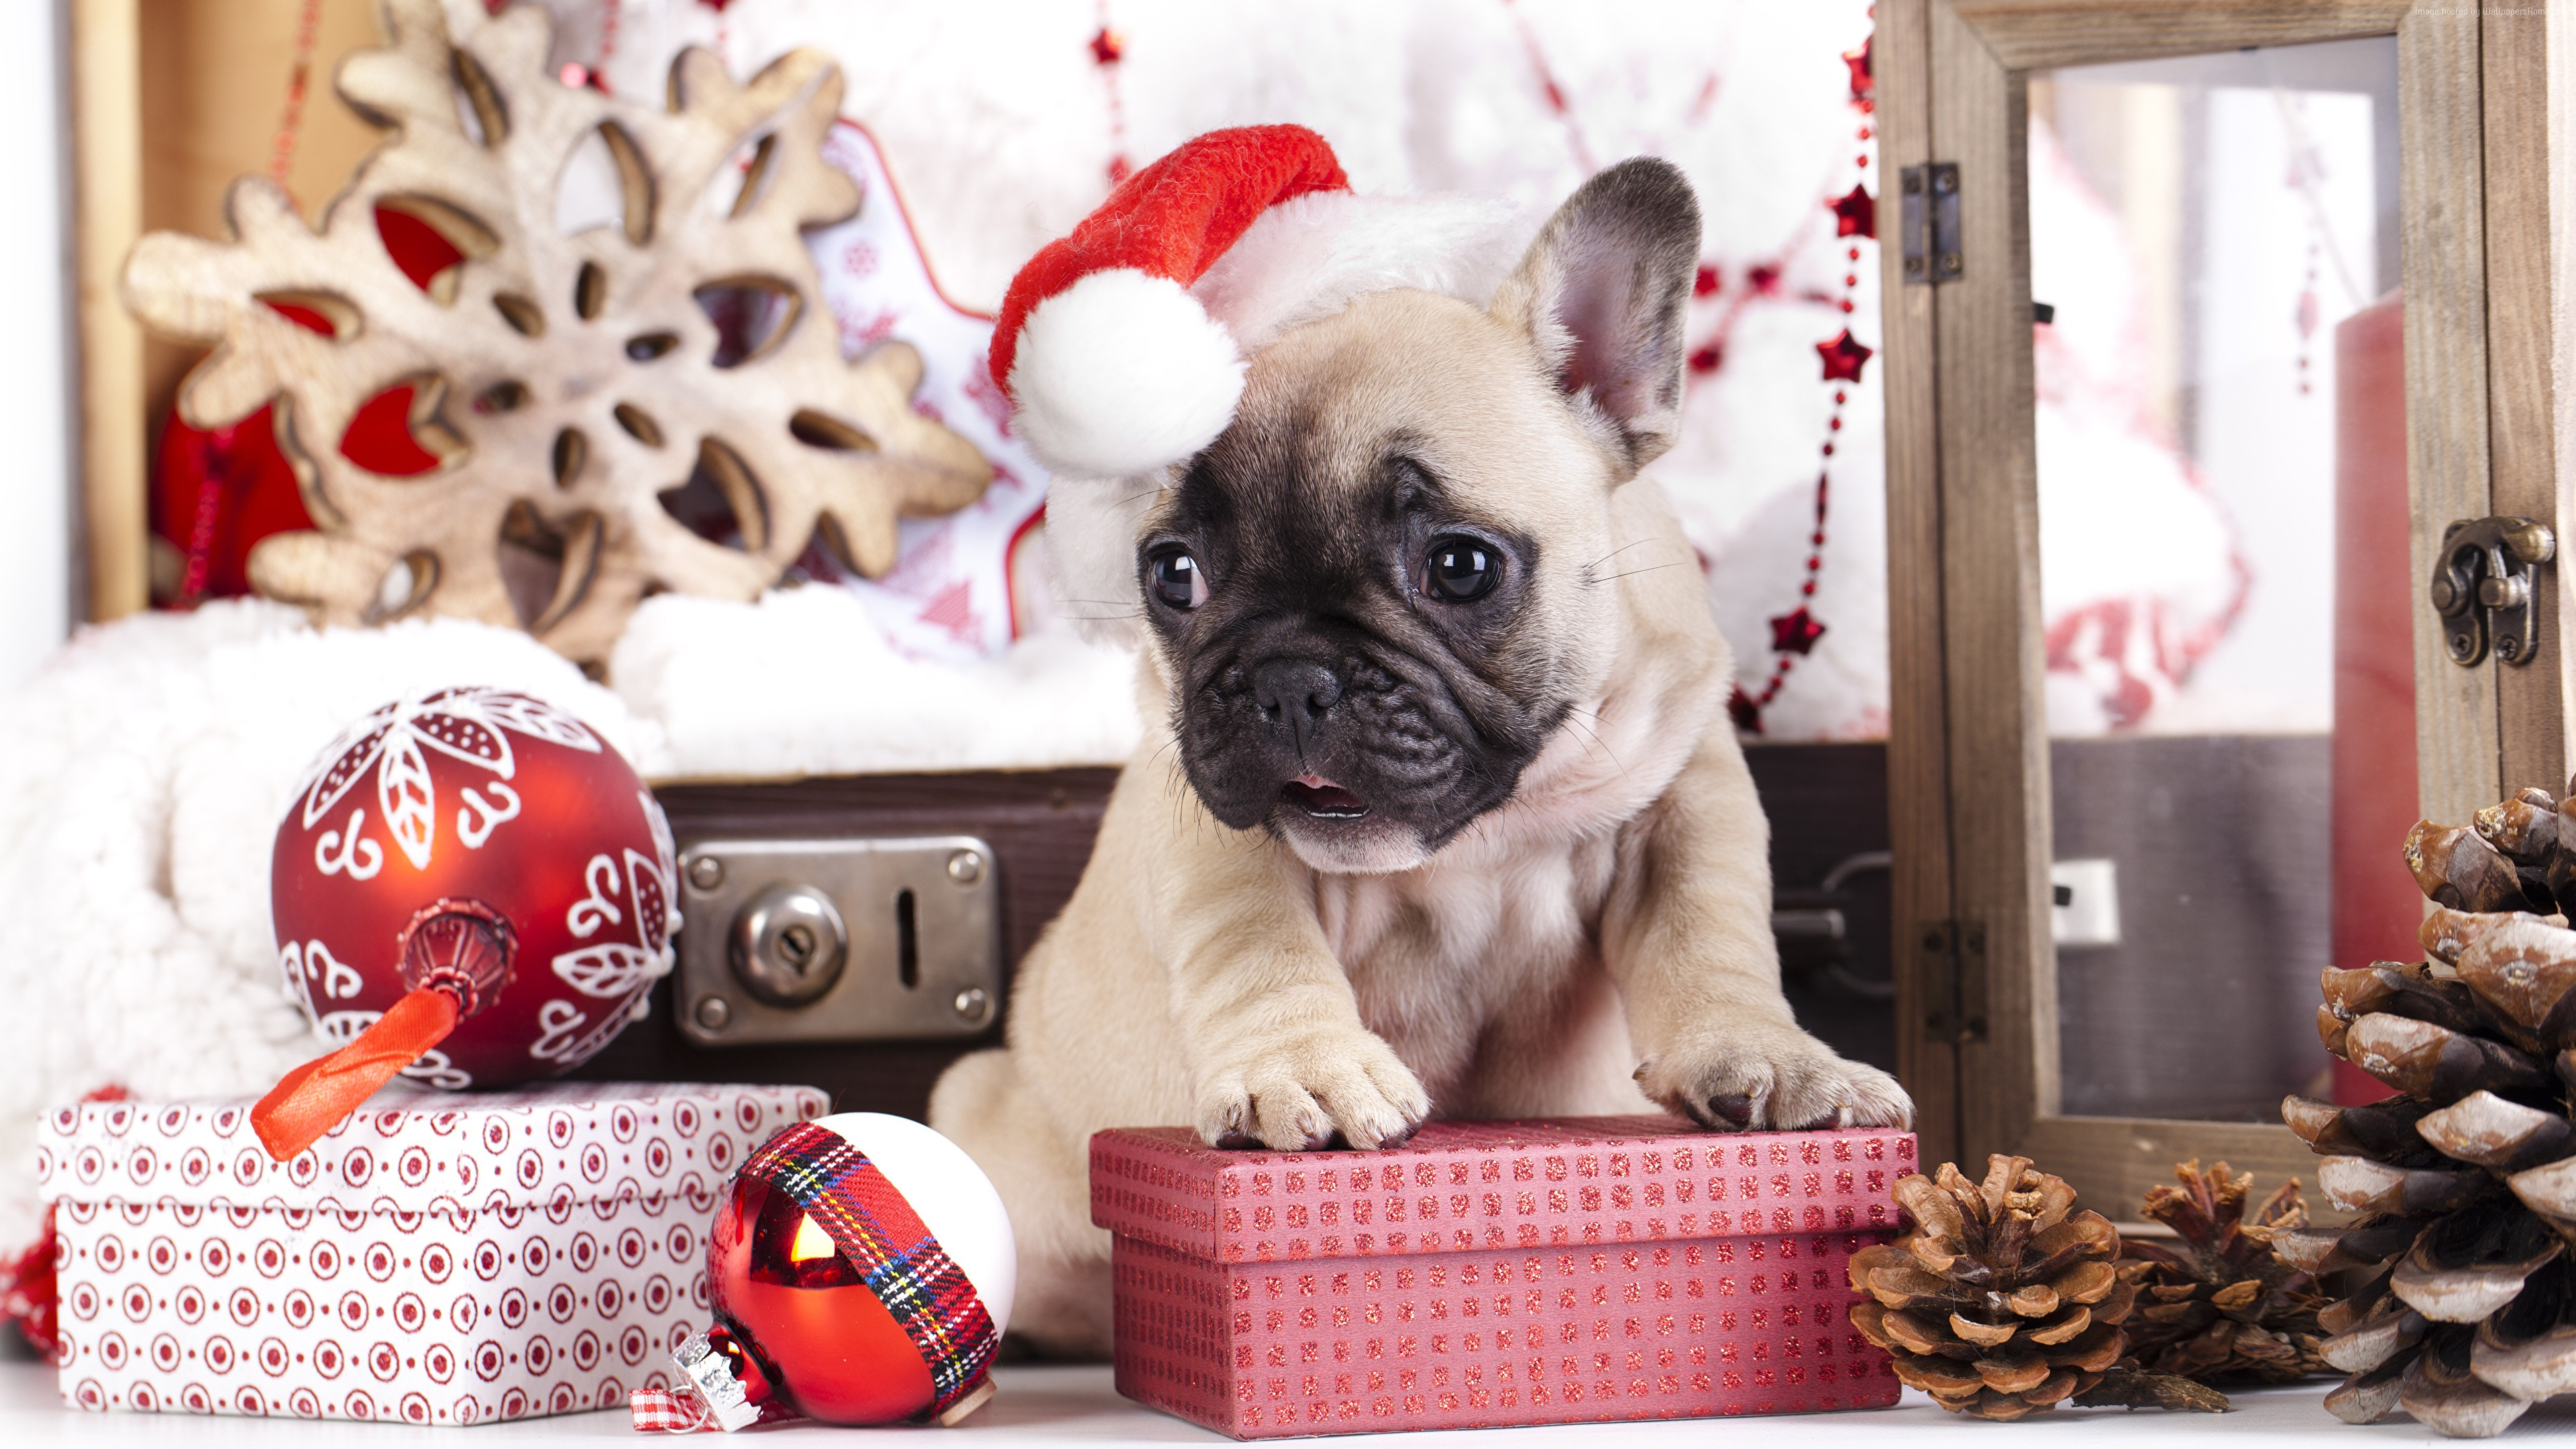 Wallpaper puppy, cute animals, Christmas, New Year, 4k, Holidays